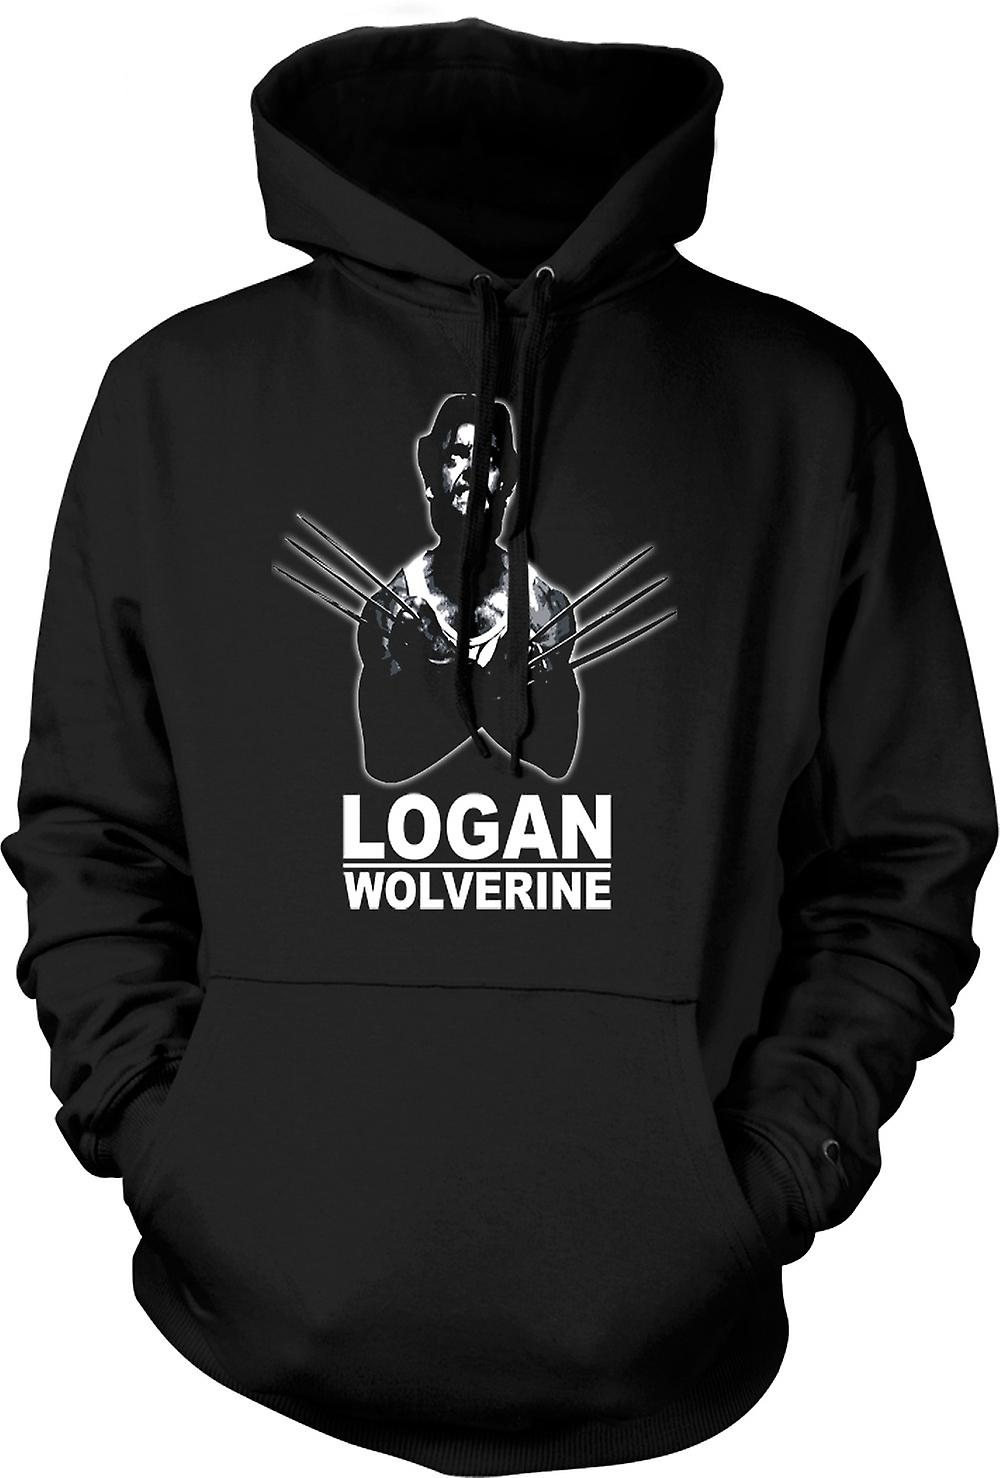 Mens Hoodie - Logan Wolverine - X - Men - Comic